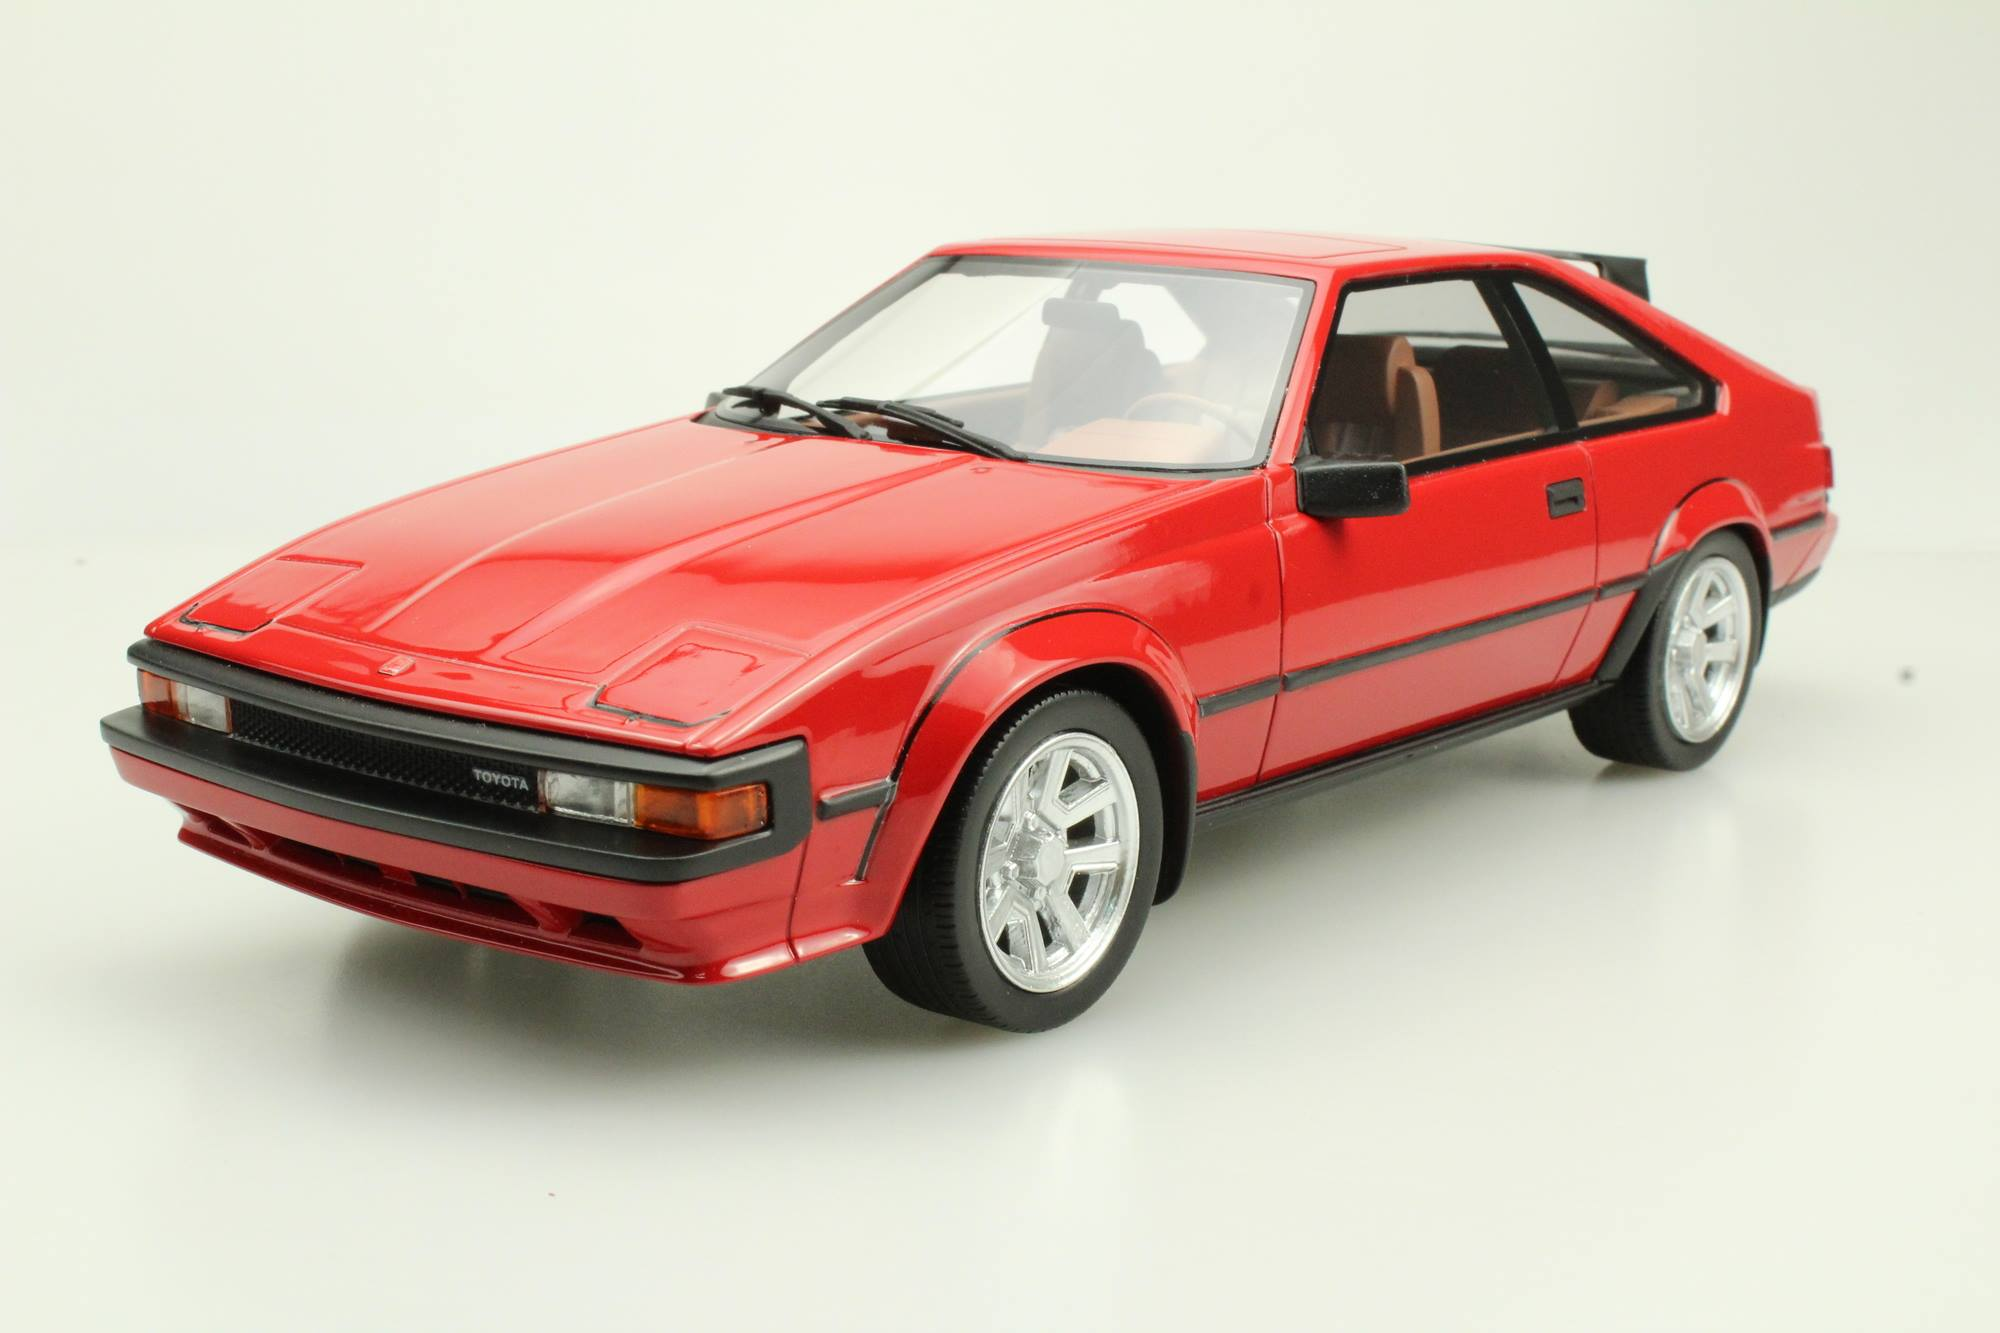 MINICARS: LS Collectibles' 1:18 Toyota Celica Supra is now ...